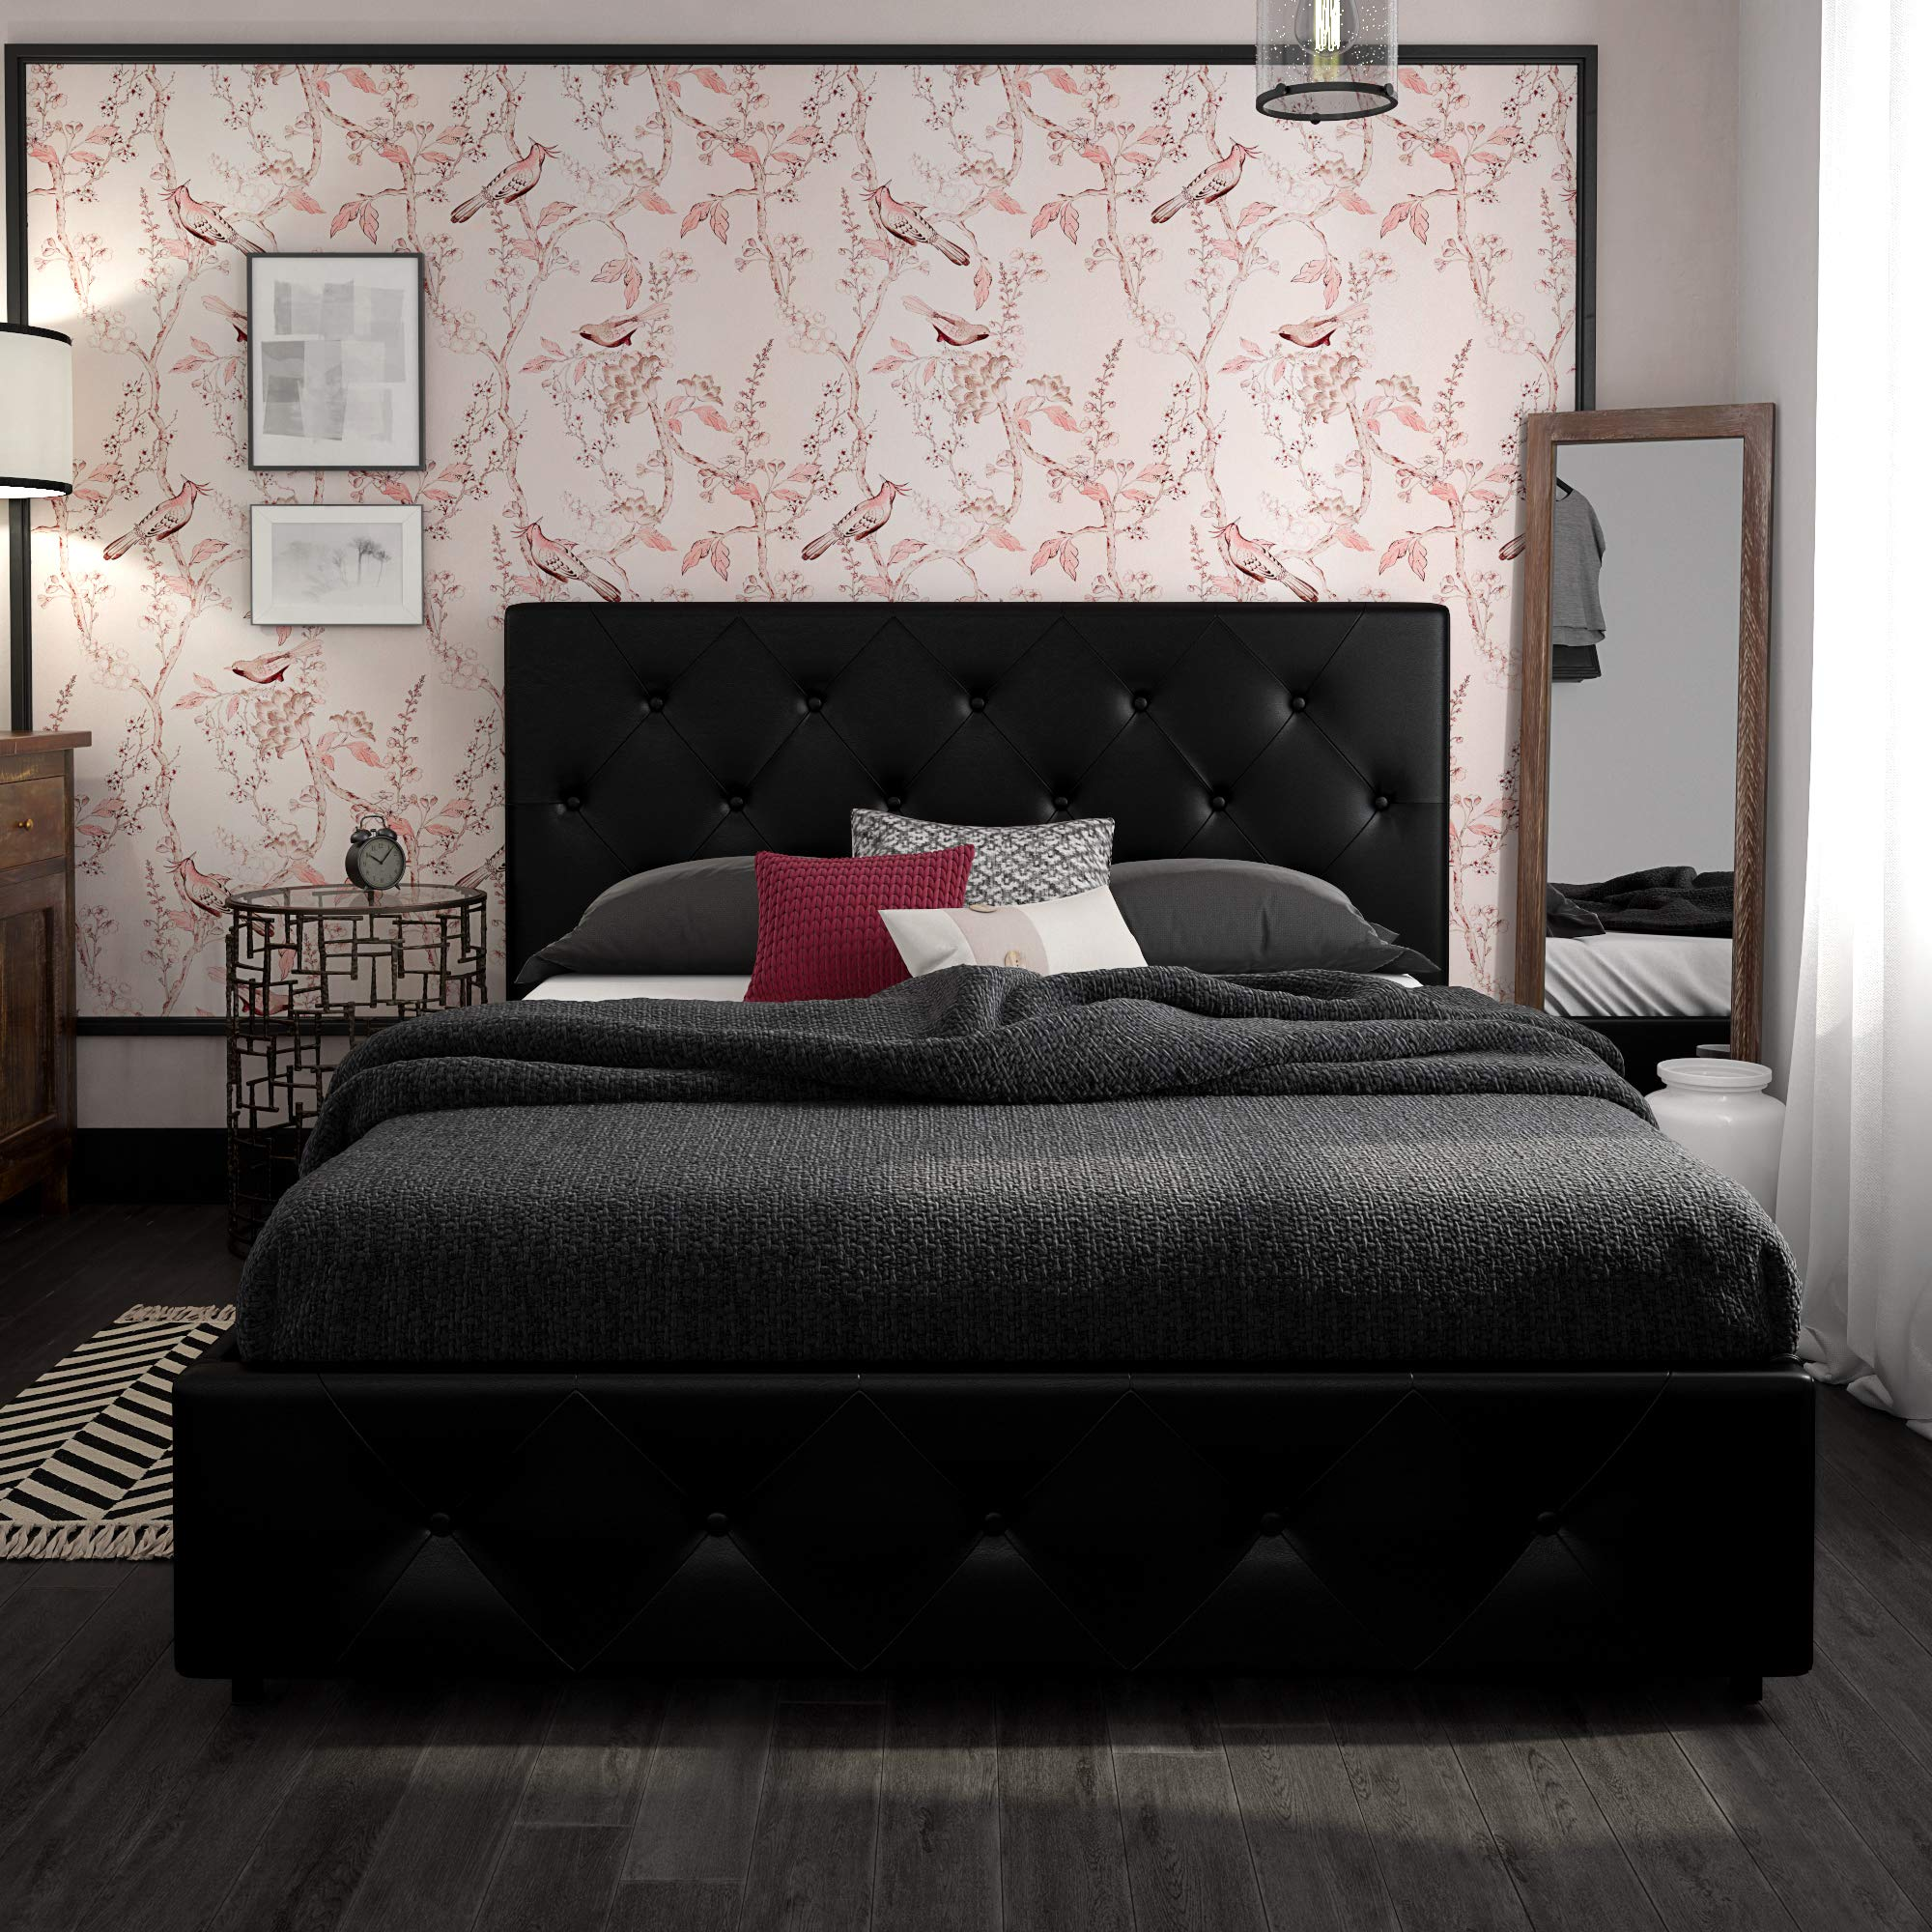 DHP Dakota Upholstered Platform Bed with Storage Drawers, Black Faux Leather, Queen by DHP (Image #7)